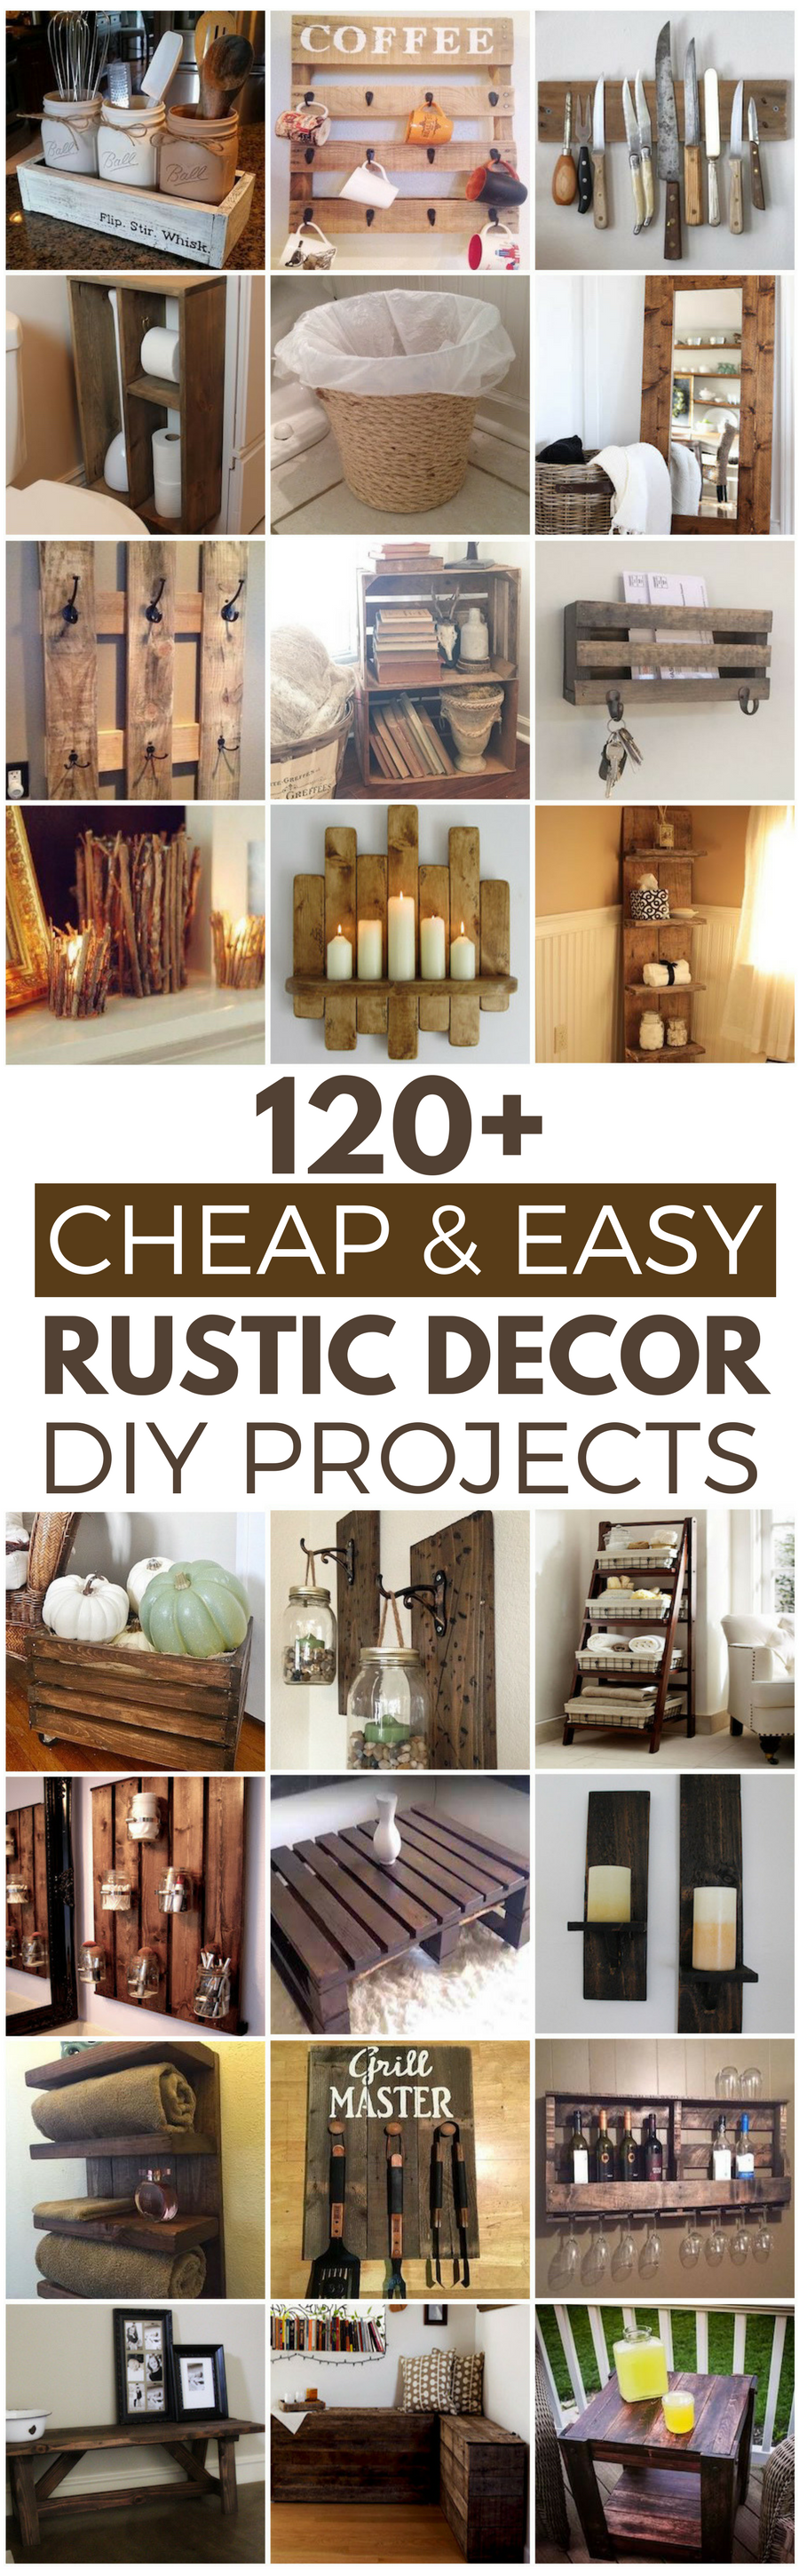 Ordinaire Rustic Home Decor Ideas